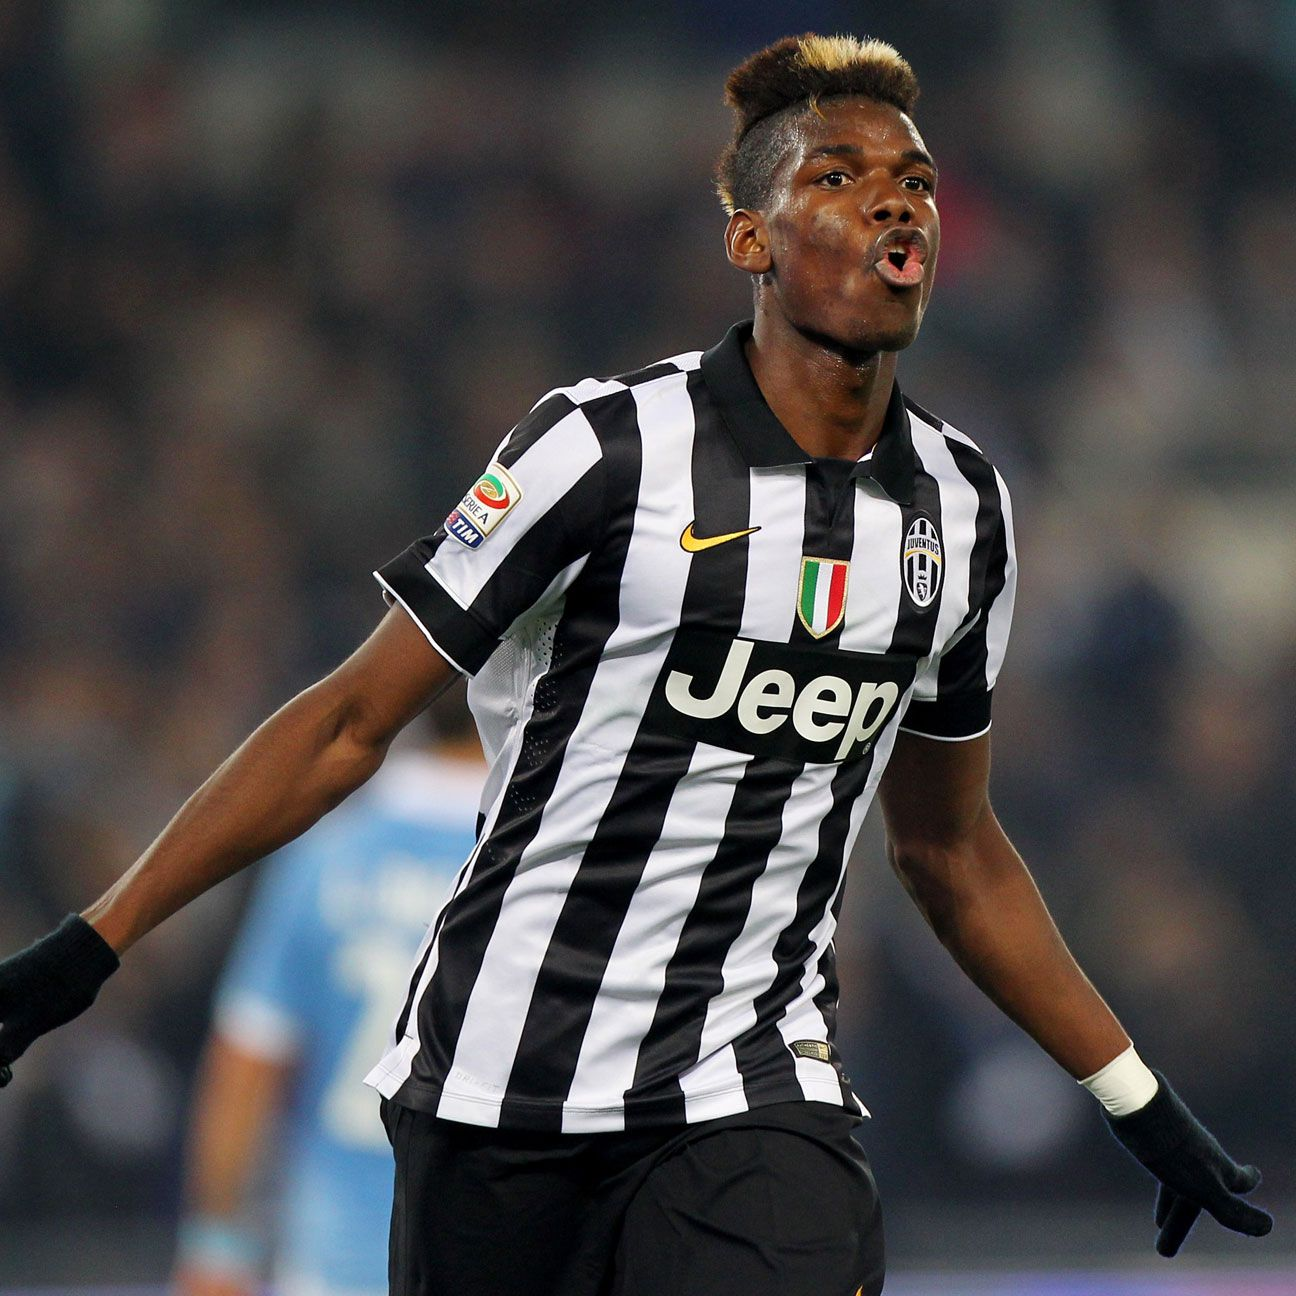 Paul Pogba, who has developed into one of the world's top midfielders, could be leaving Juventus this summer.